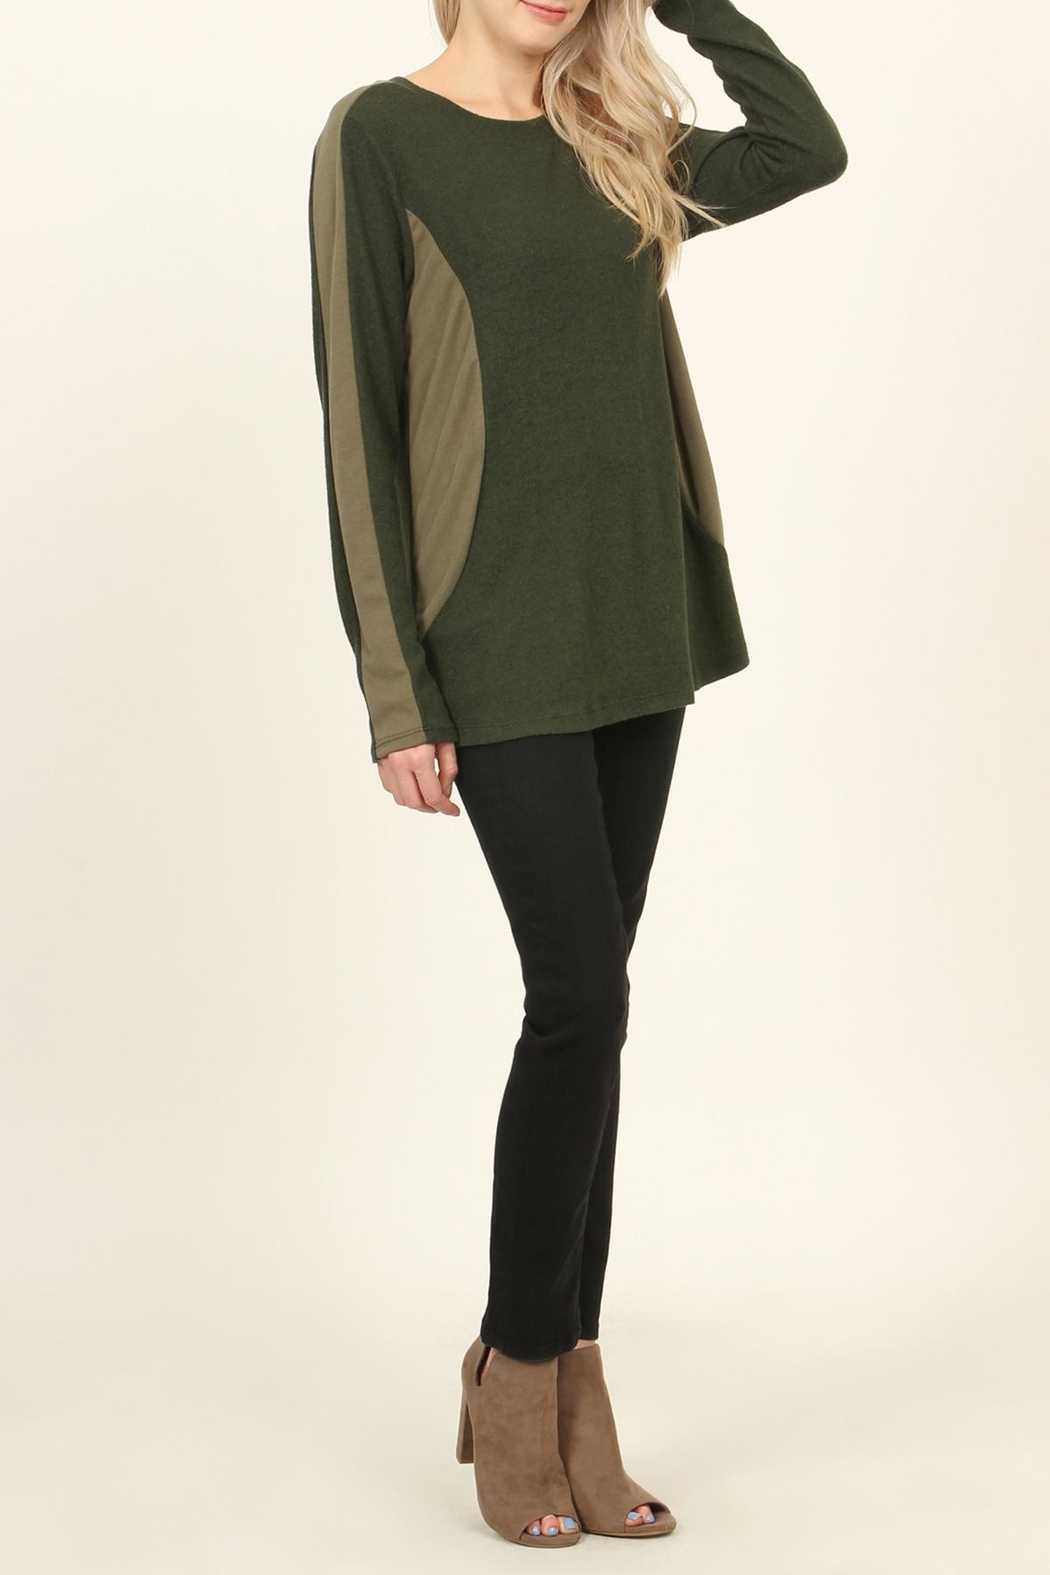 Riah Fashion Two-Tone-Side & Sleeve-Accented-Sweater - Side Cropped Image